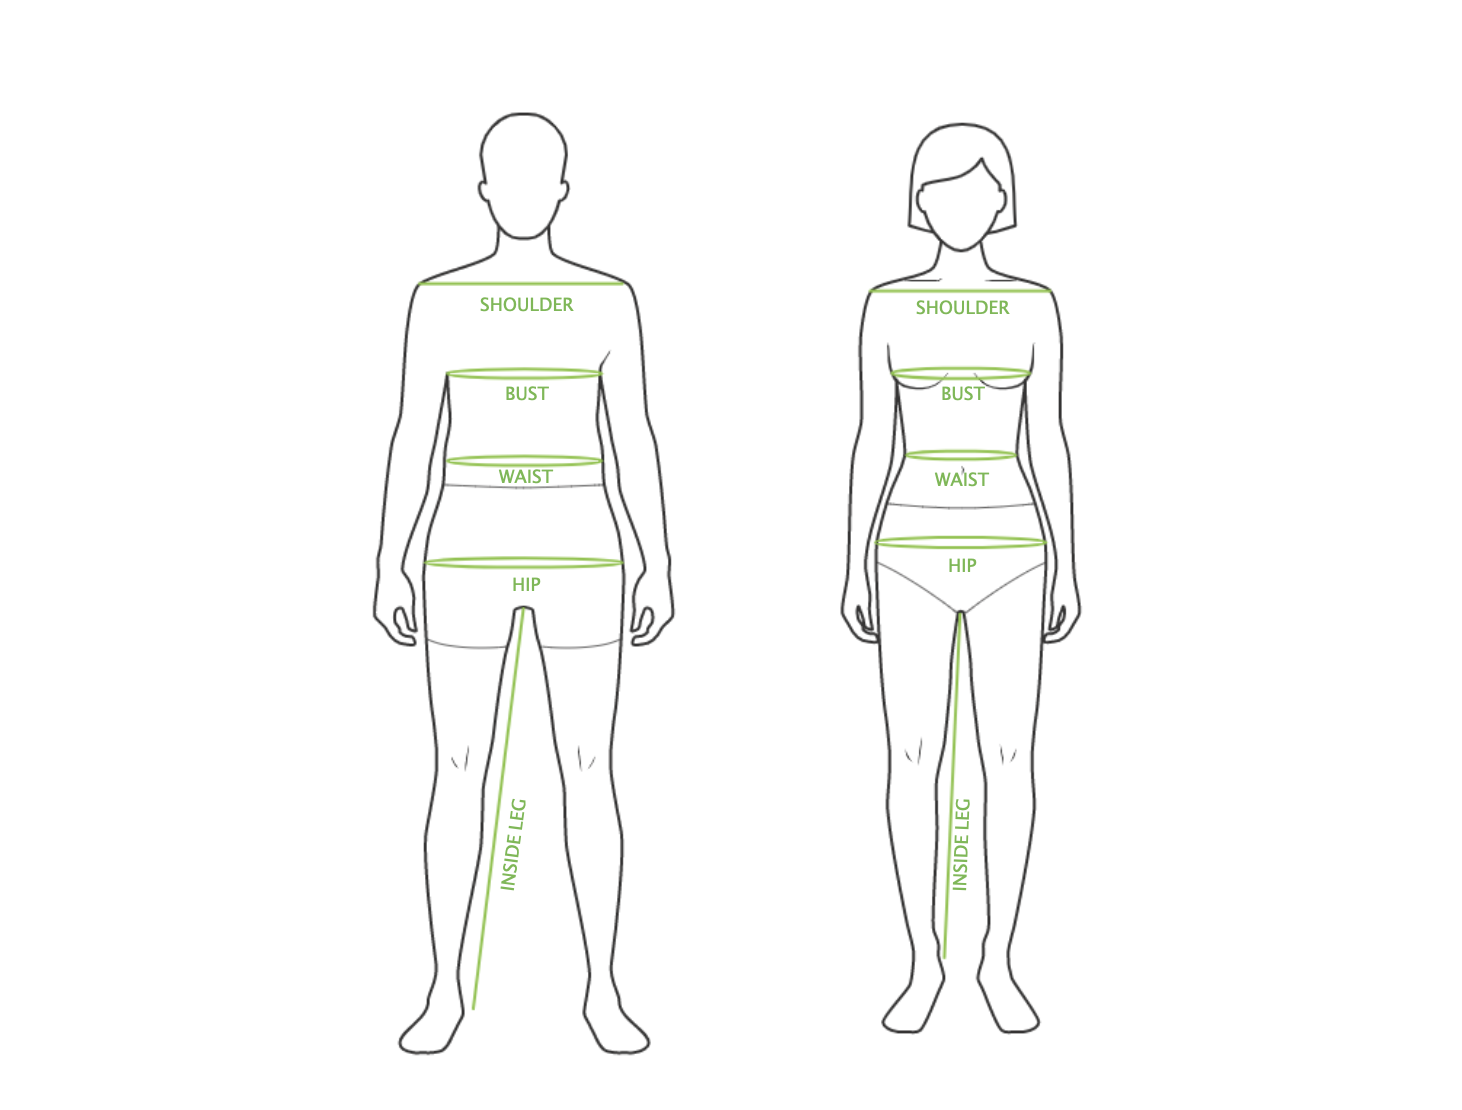 How to Measure Jeans Kiwi Sizing - Improve conversion and lower returns.